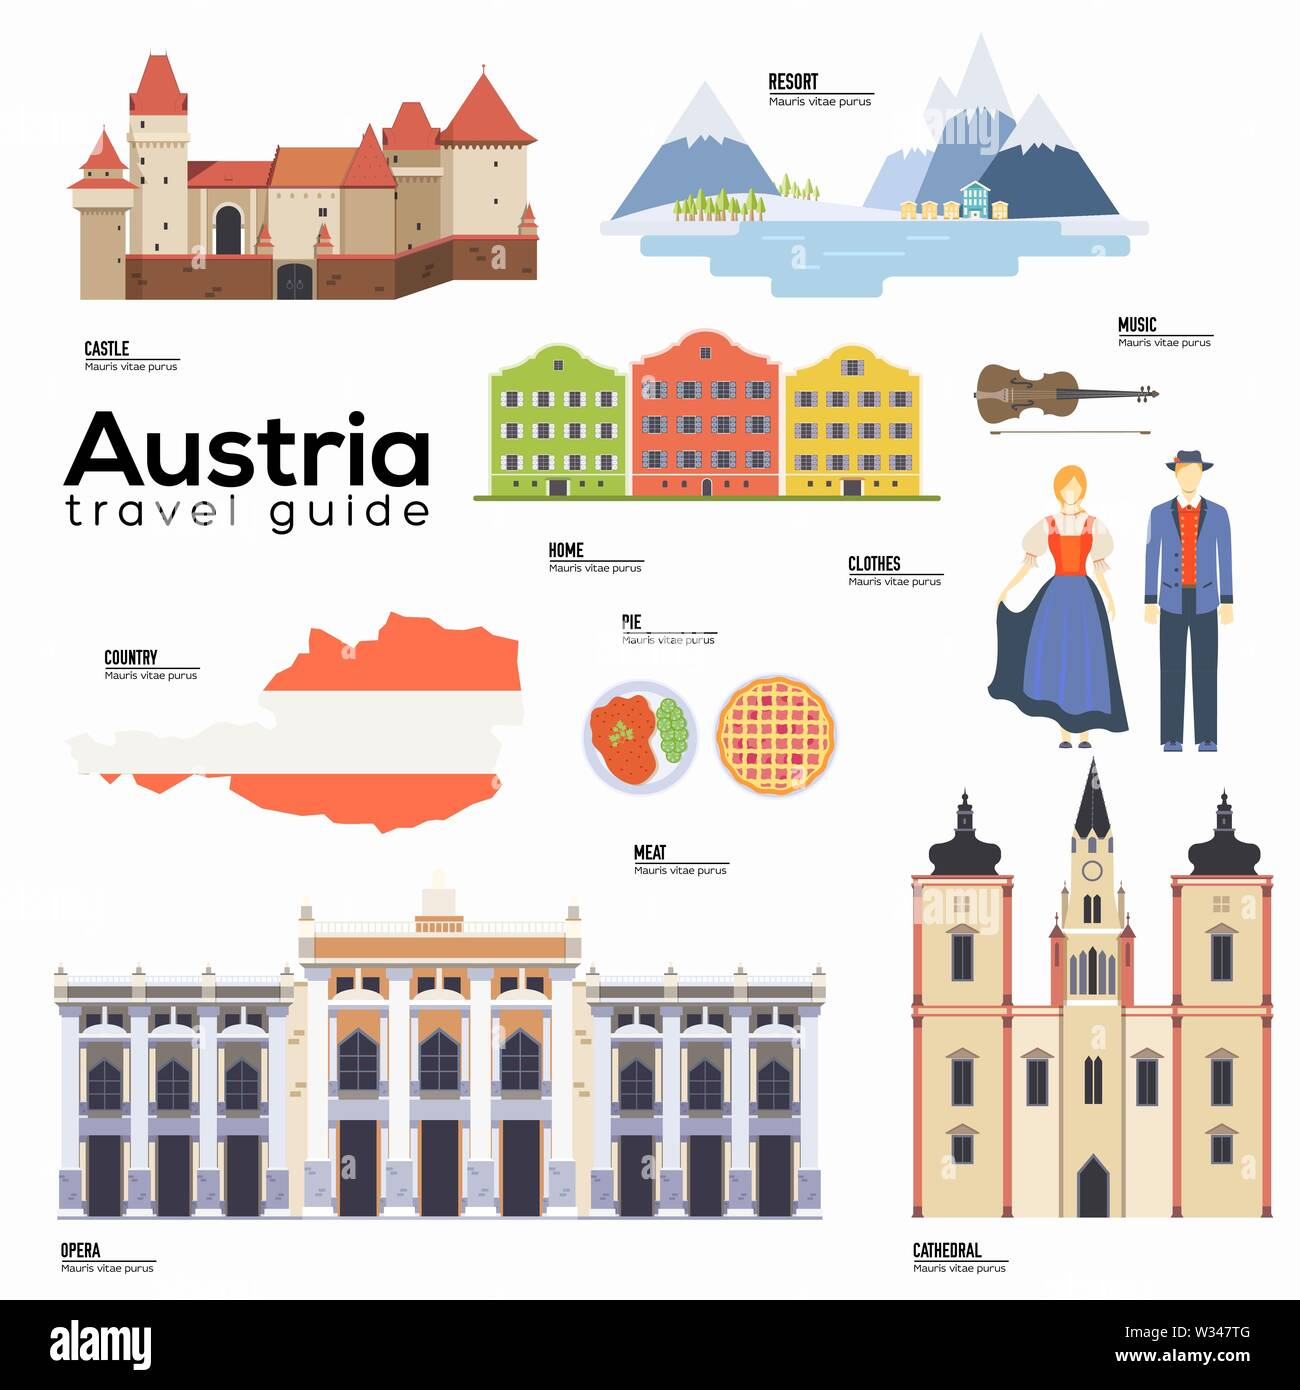 Austria travel guide template. Set of austrian landmarks, cuisine, traditions flat icons, pictograms on white. Sightseeing attractions and cultural sy - Stock Image